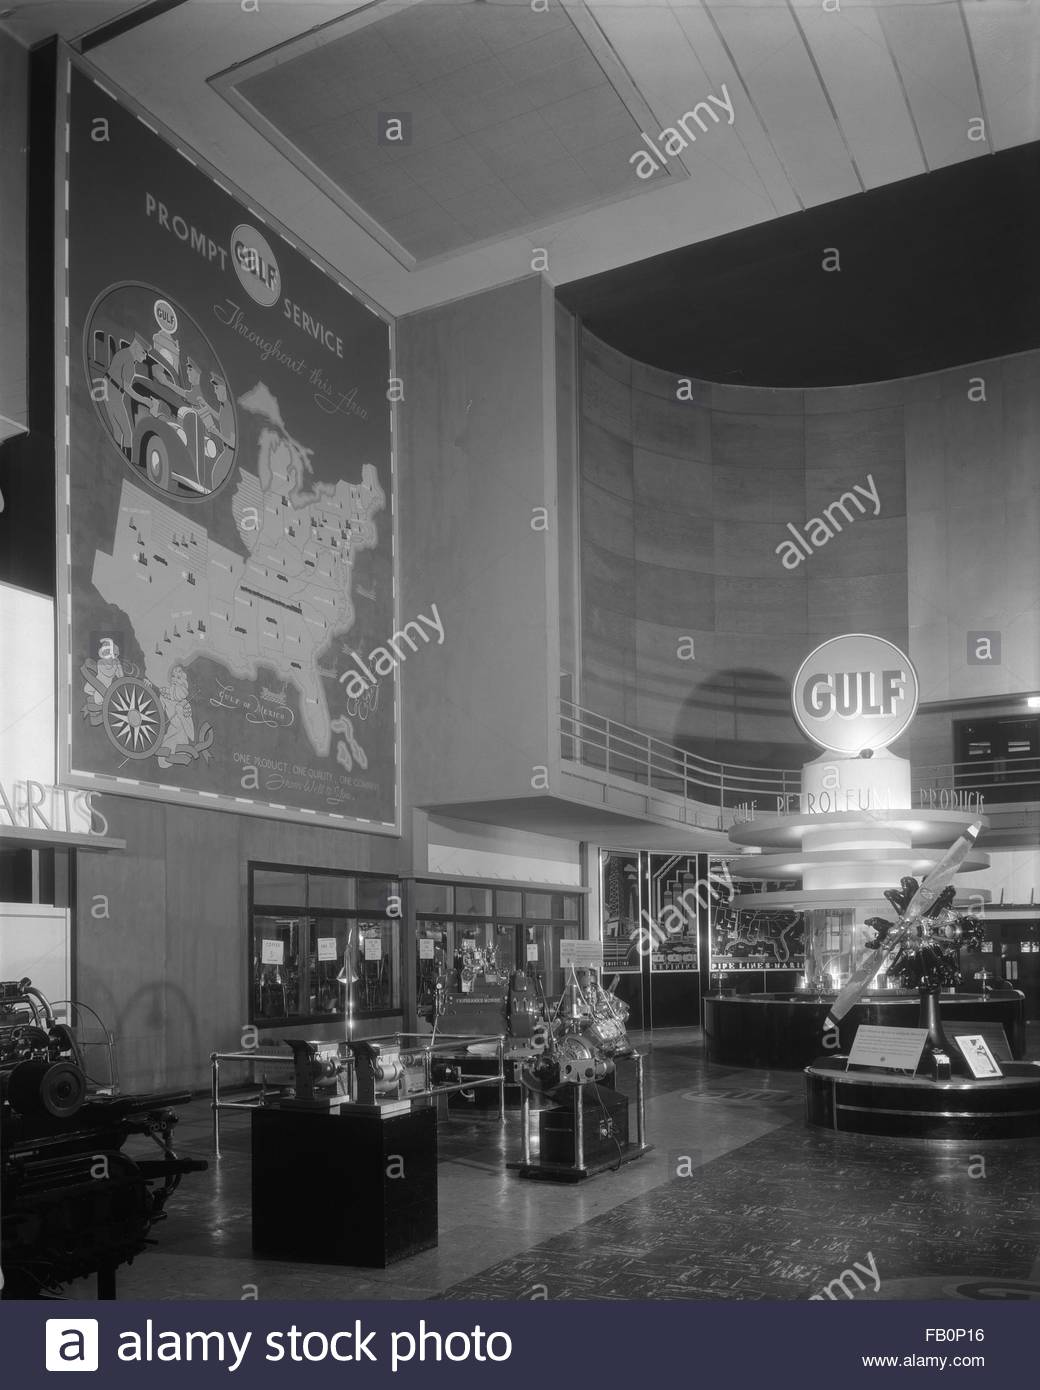 Gulf Oil exhibit at the Century of Progress, 1933. Interior view of the Gulf Refining Company exhibit at the Century - Stock Image